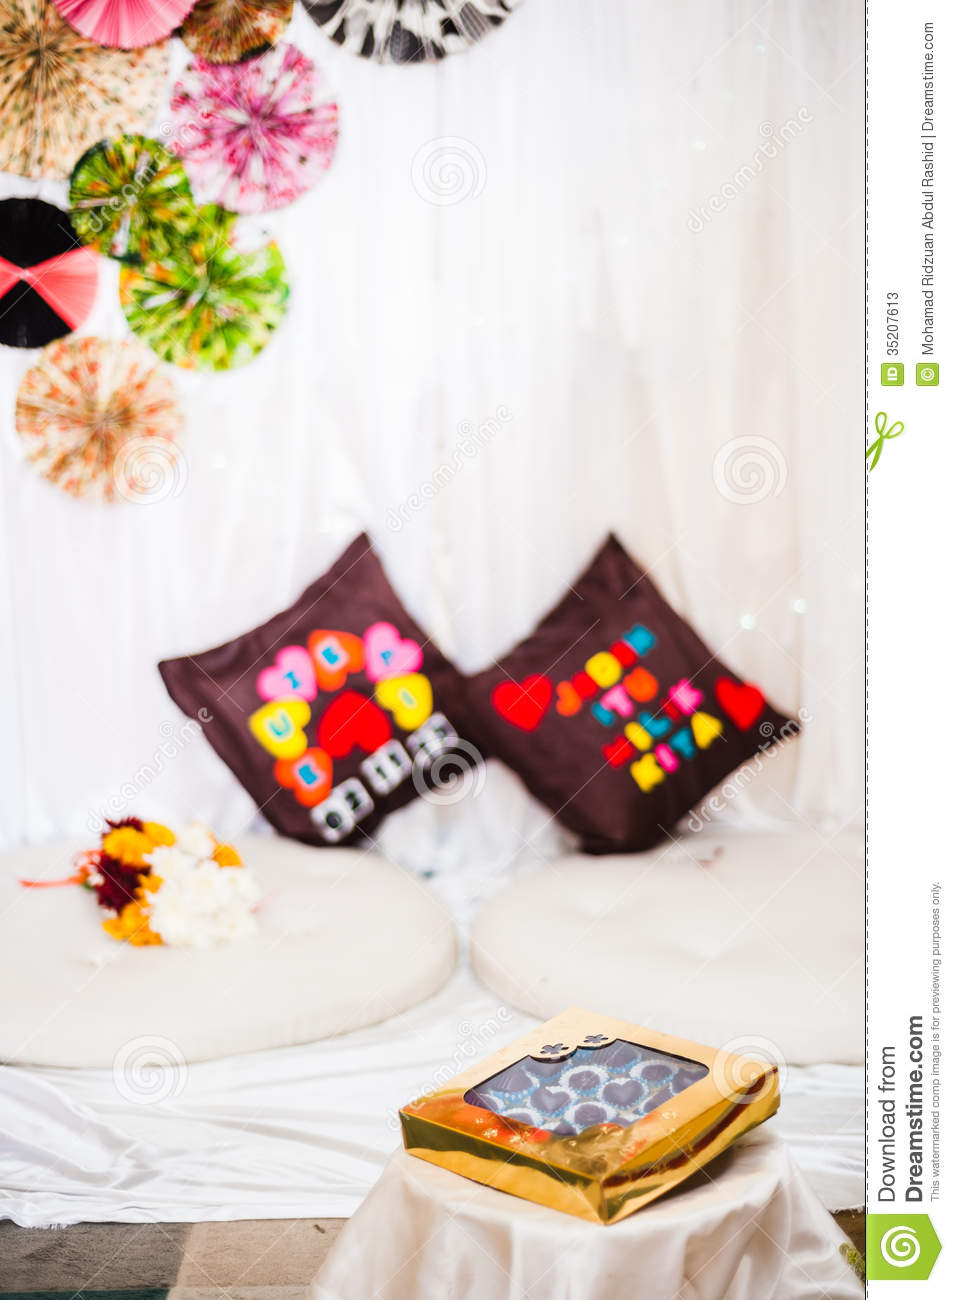 Wedding Gift Decoration Stock PhotosImage: 35207613